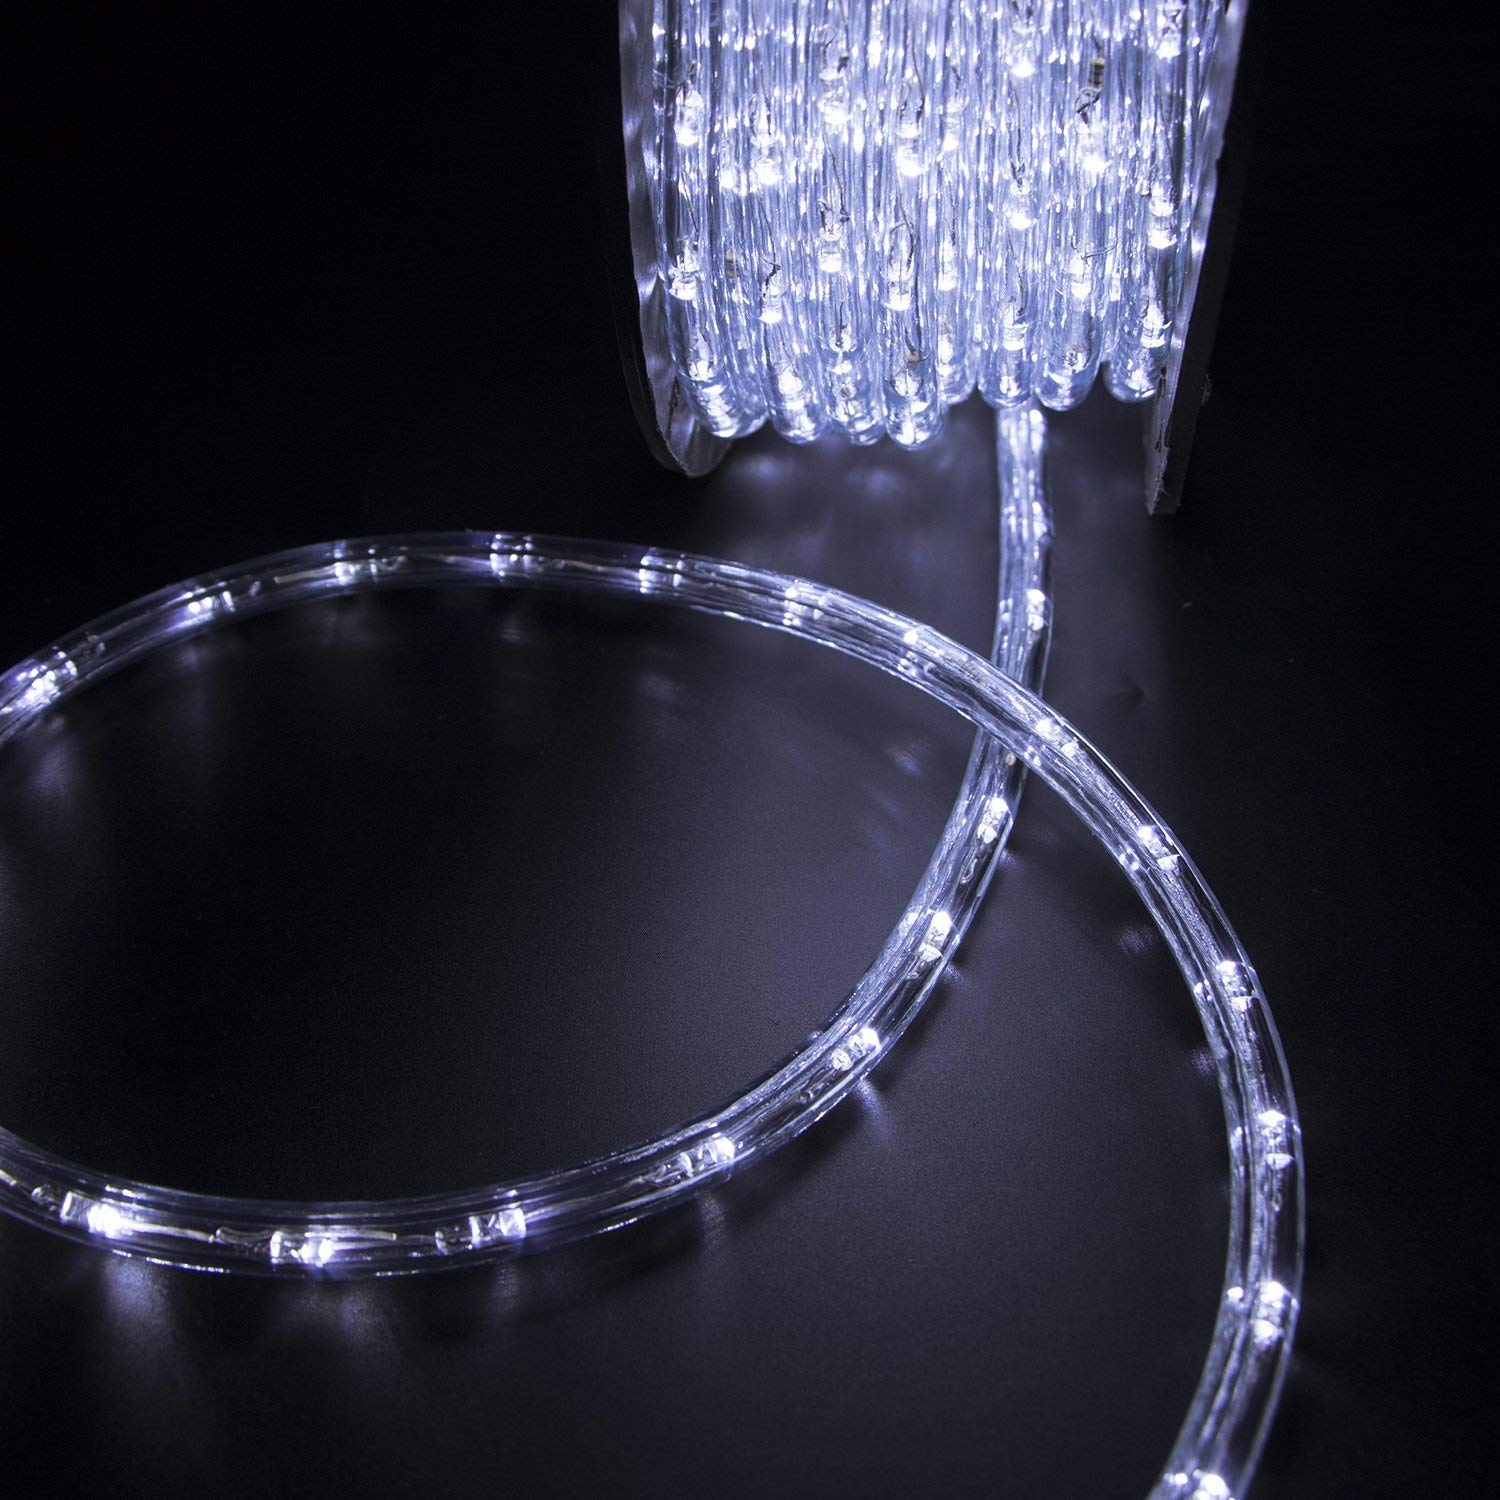 Ainfox LED Rope Light, 150Ft 1620 LEDs Indoor Outdoor Waterproof LED Strip Lights Decorative Lighting (150FT Cold White) by Ainfox (Image #8)